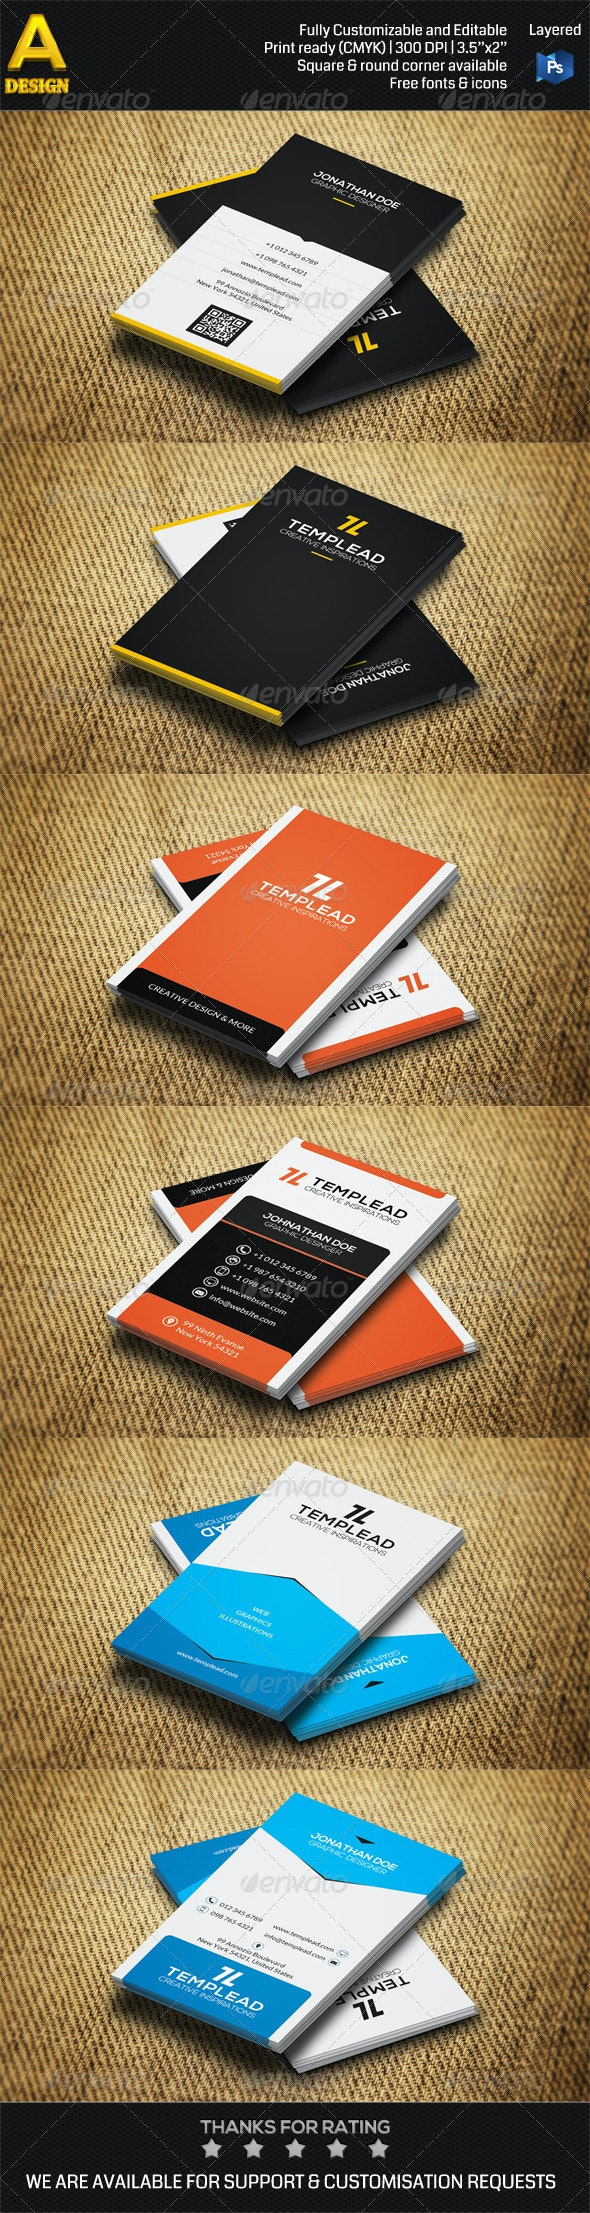 3 in 1 Corporate Business Card Bundle ANB0035 - Corporate Business Cards